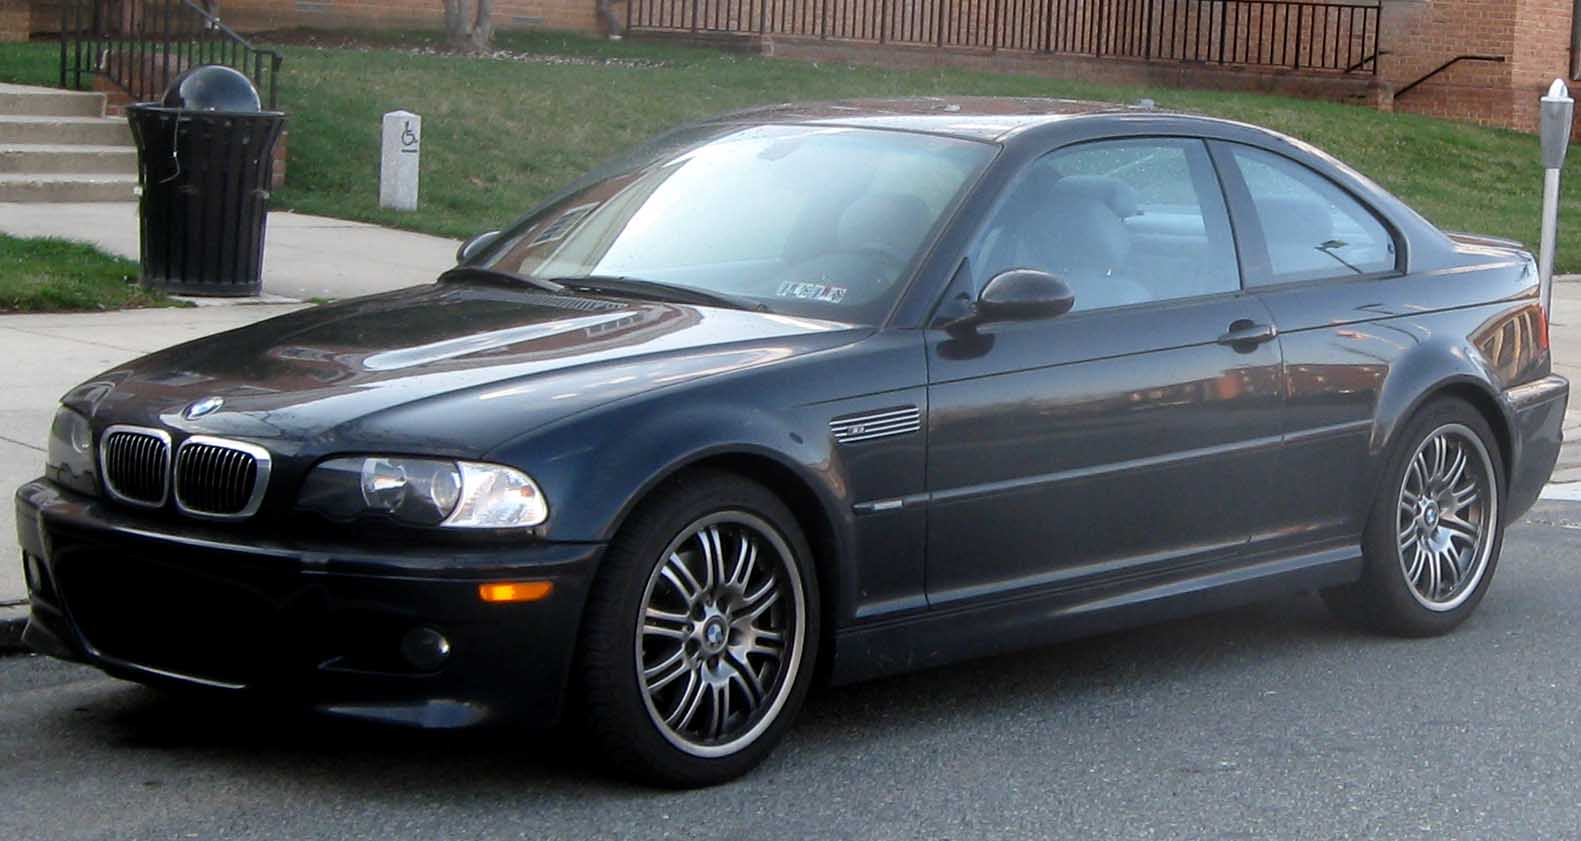 File:BMW M3 coupe E46.jpg - Wikipedia